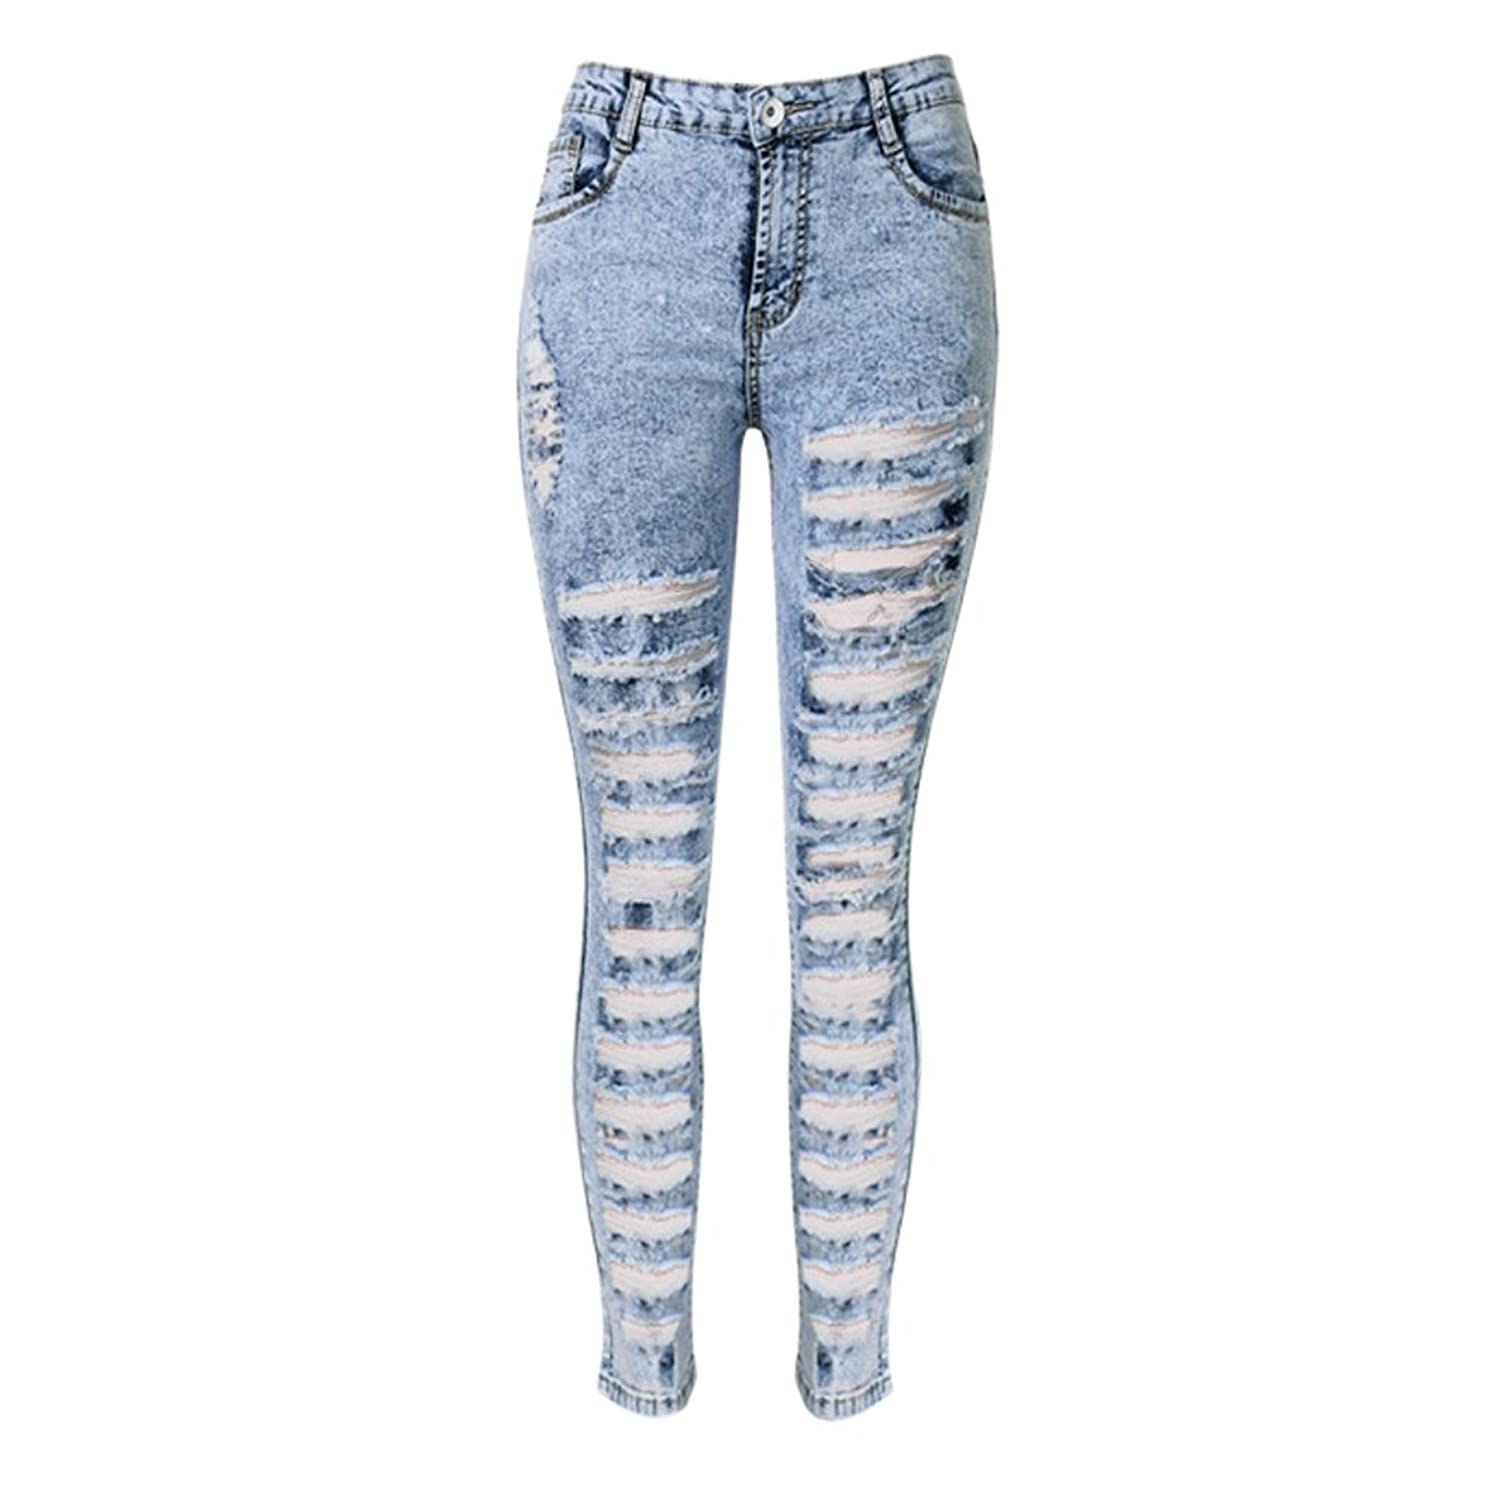 LIYT TOPSHOP Women's Fashion High Waist Slim Ripped Hole Jeans Pencil Pants